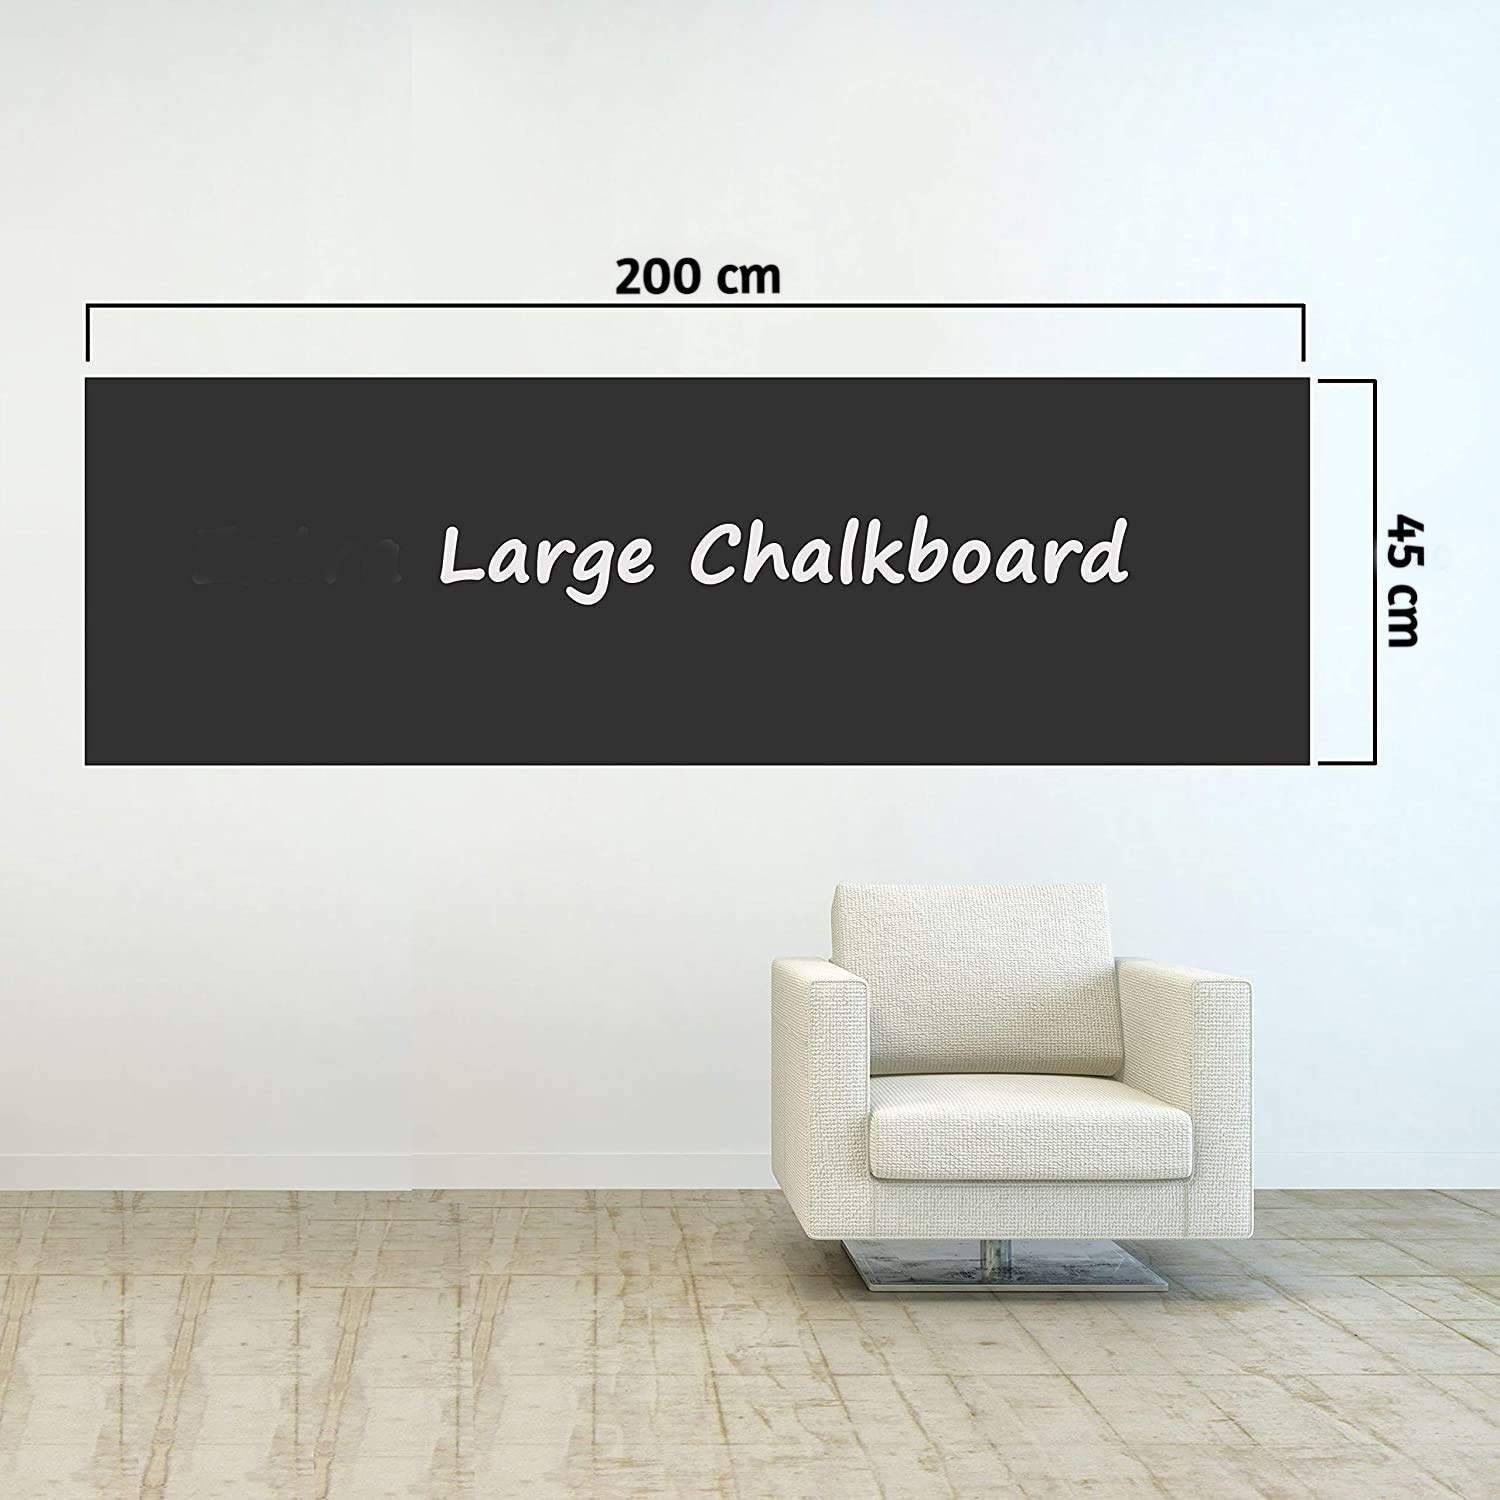 A 200x45 cm chalkboard decal on a white wall.